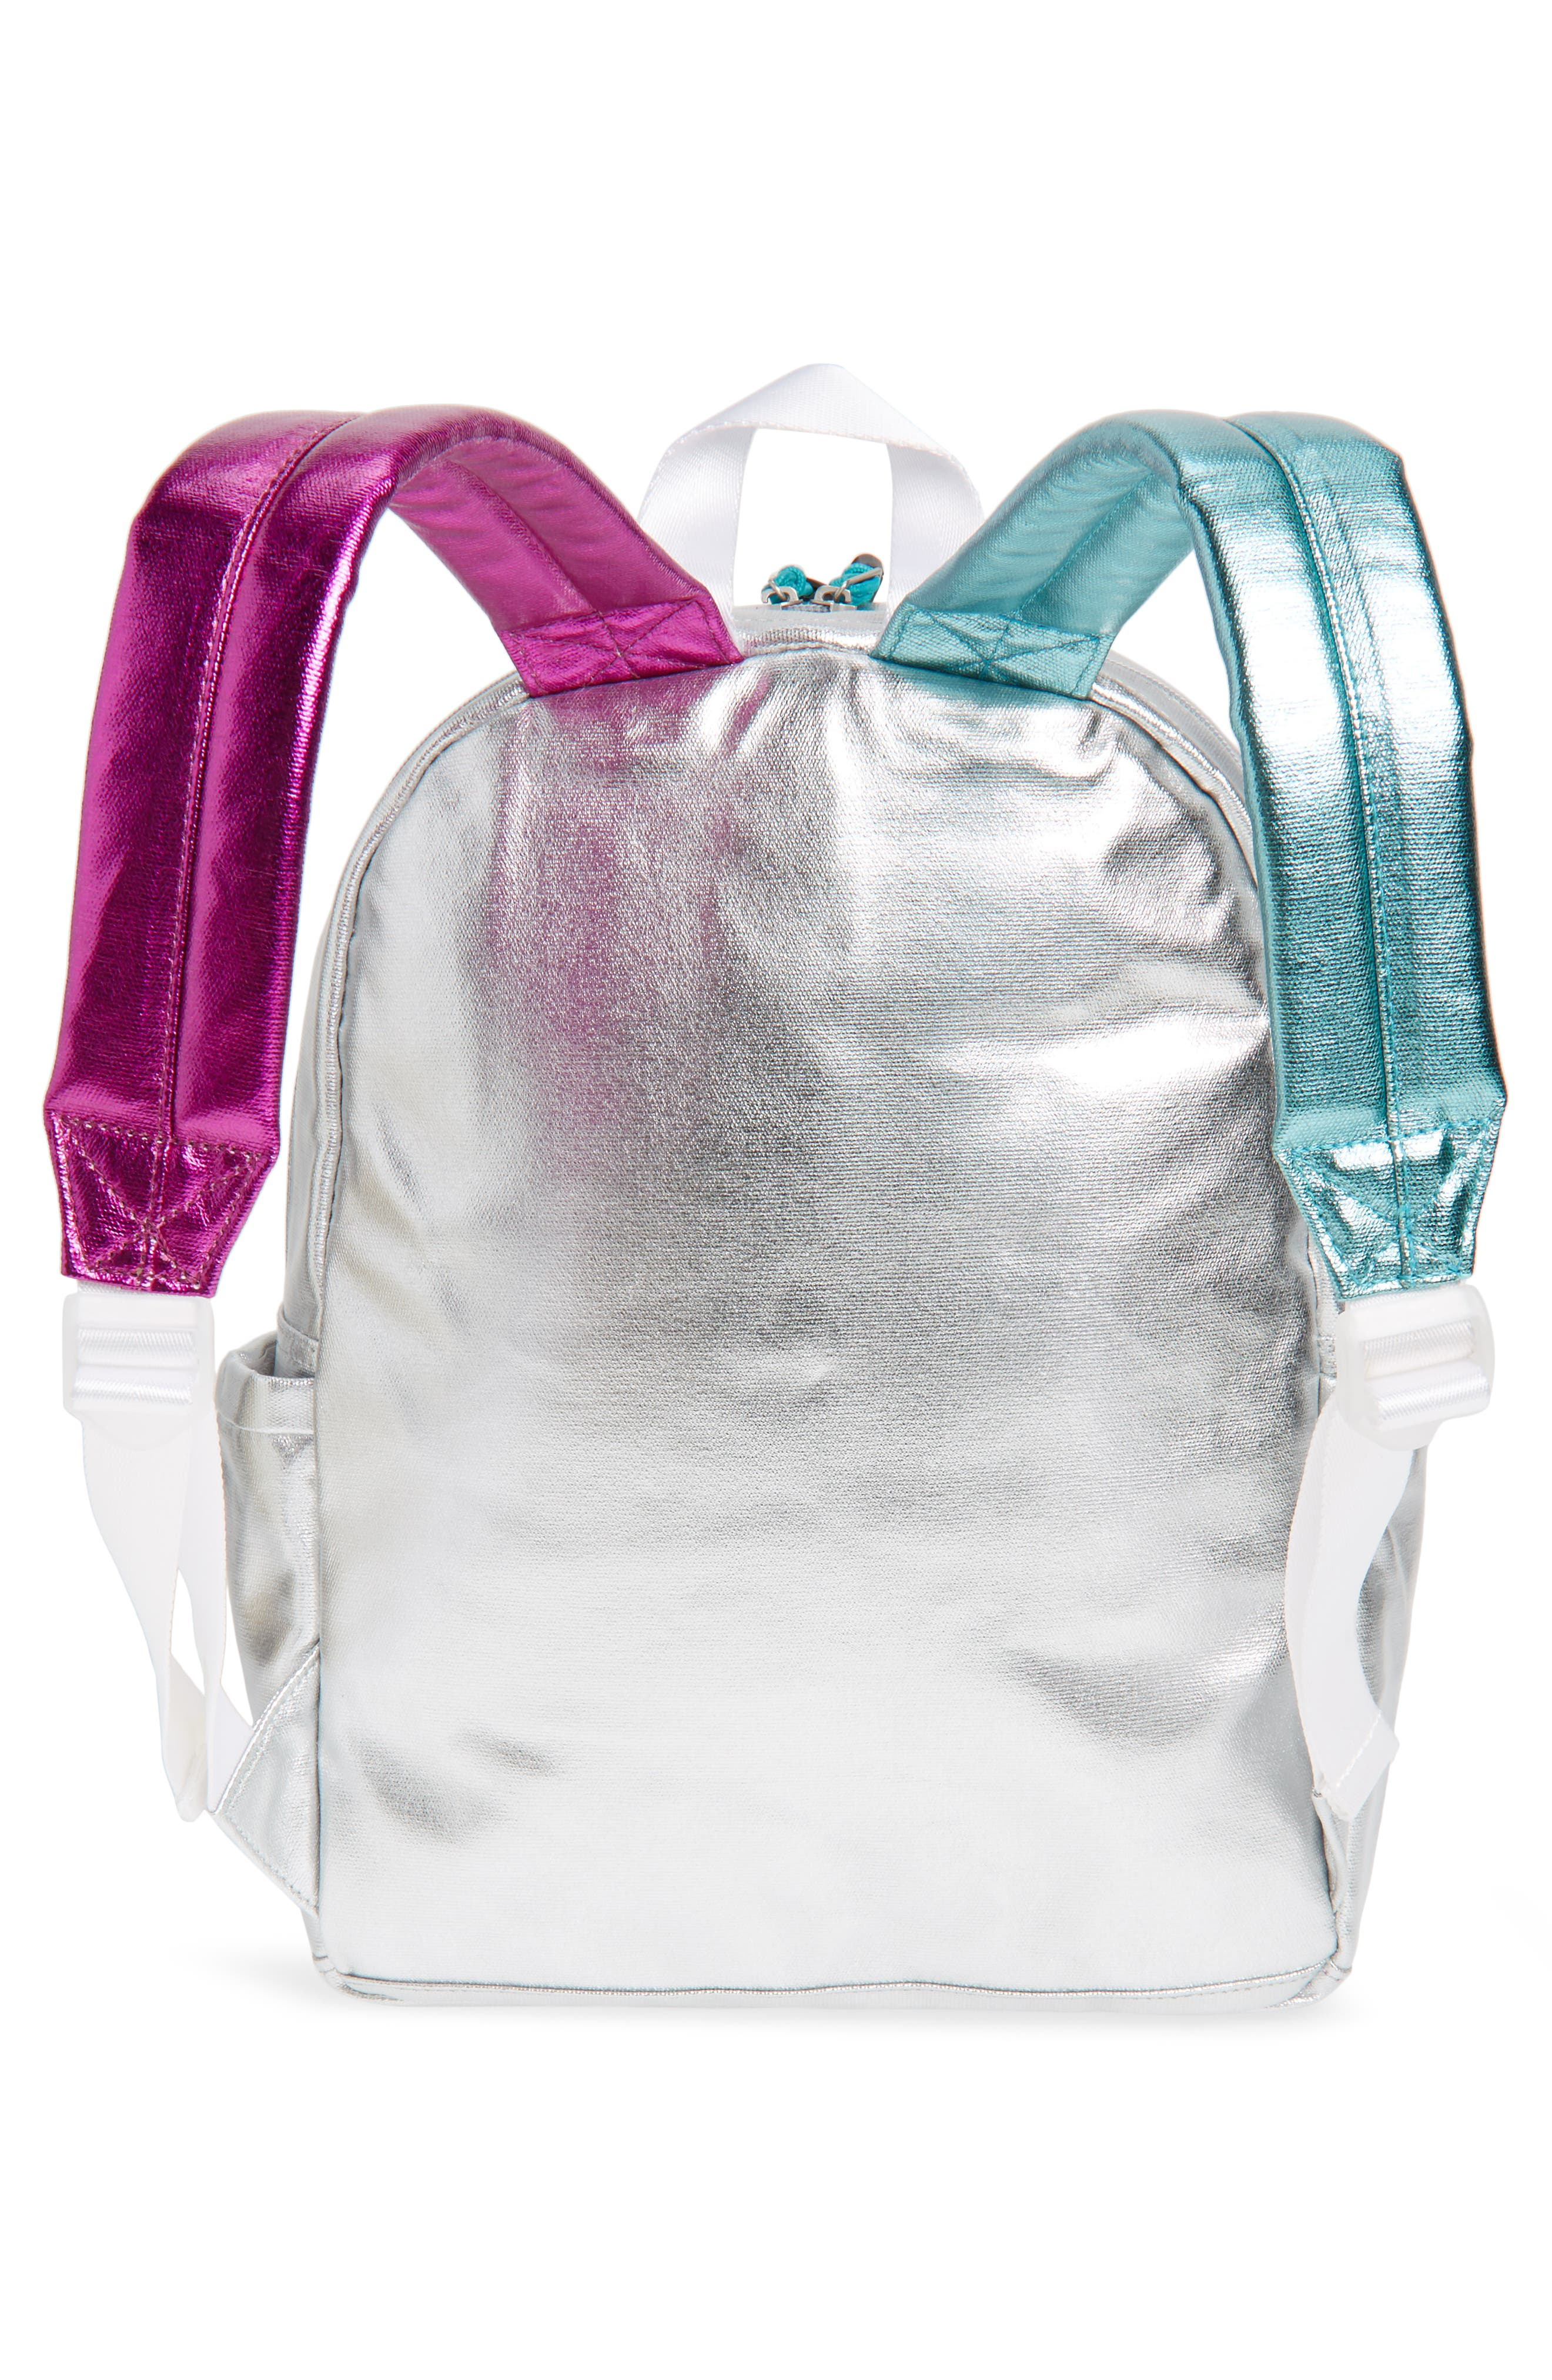 Kane Metallic Backpack,                             Alternate thumbnail 2, color,